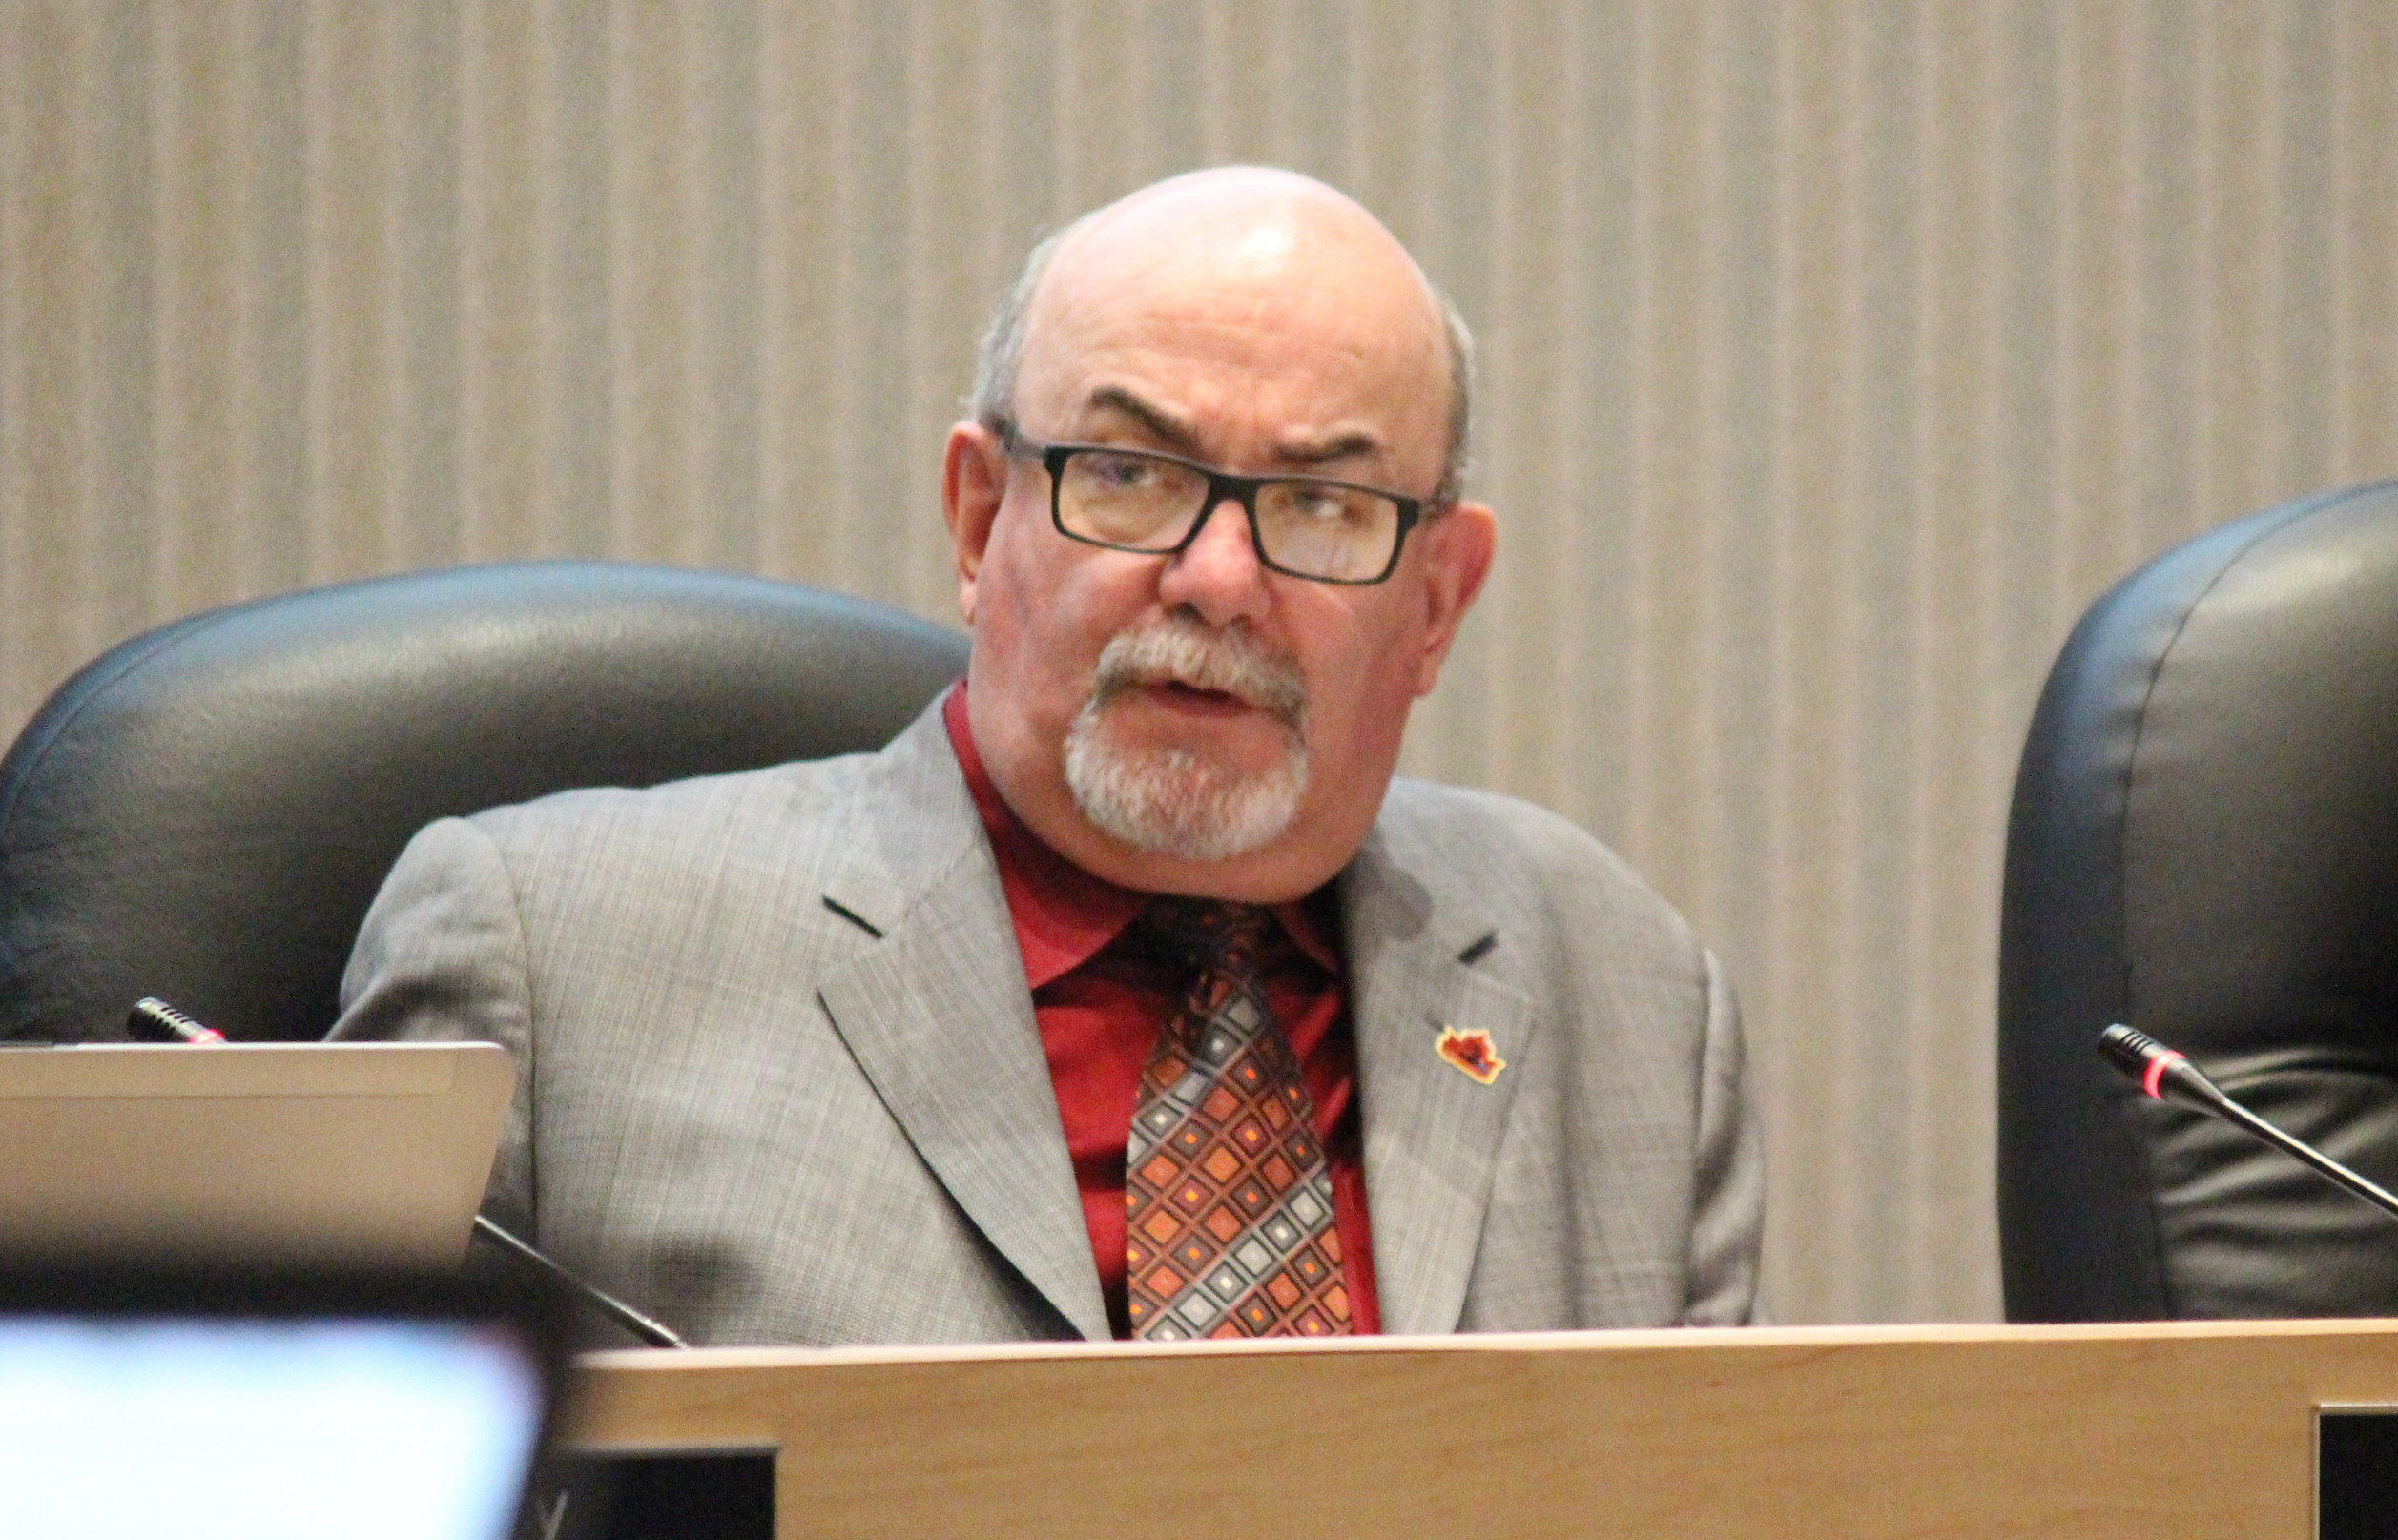 Tecumseh Mayor Gary McNamara at town council, January 26, 2015. (Photo by Mike Vlasveld)